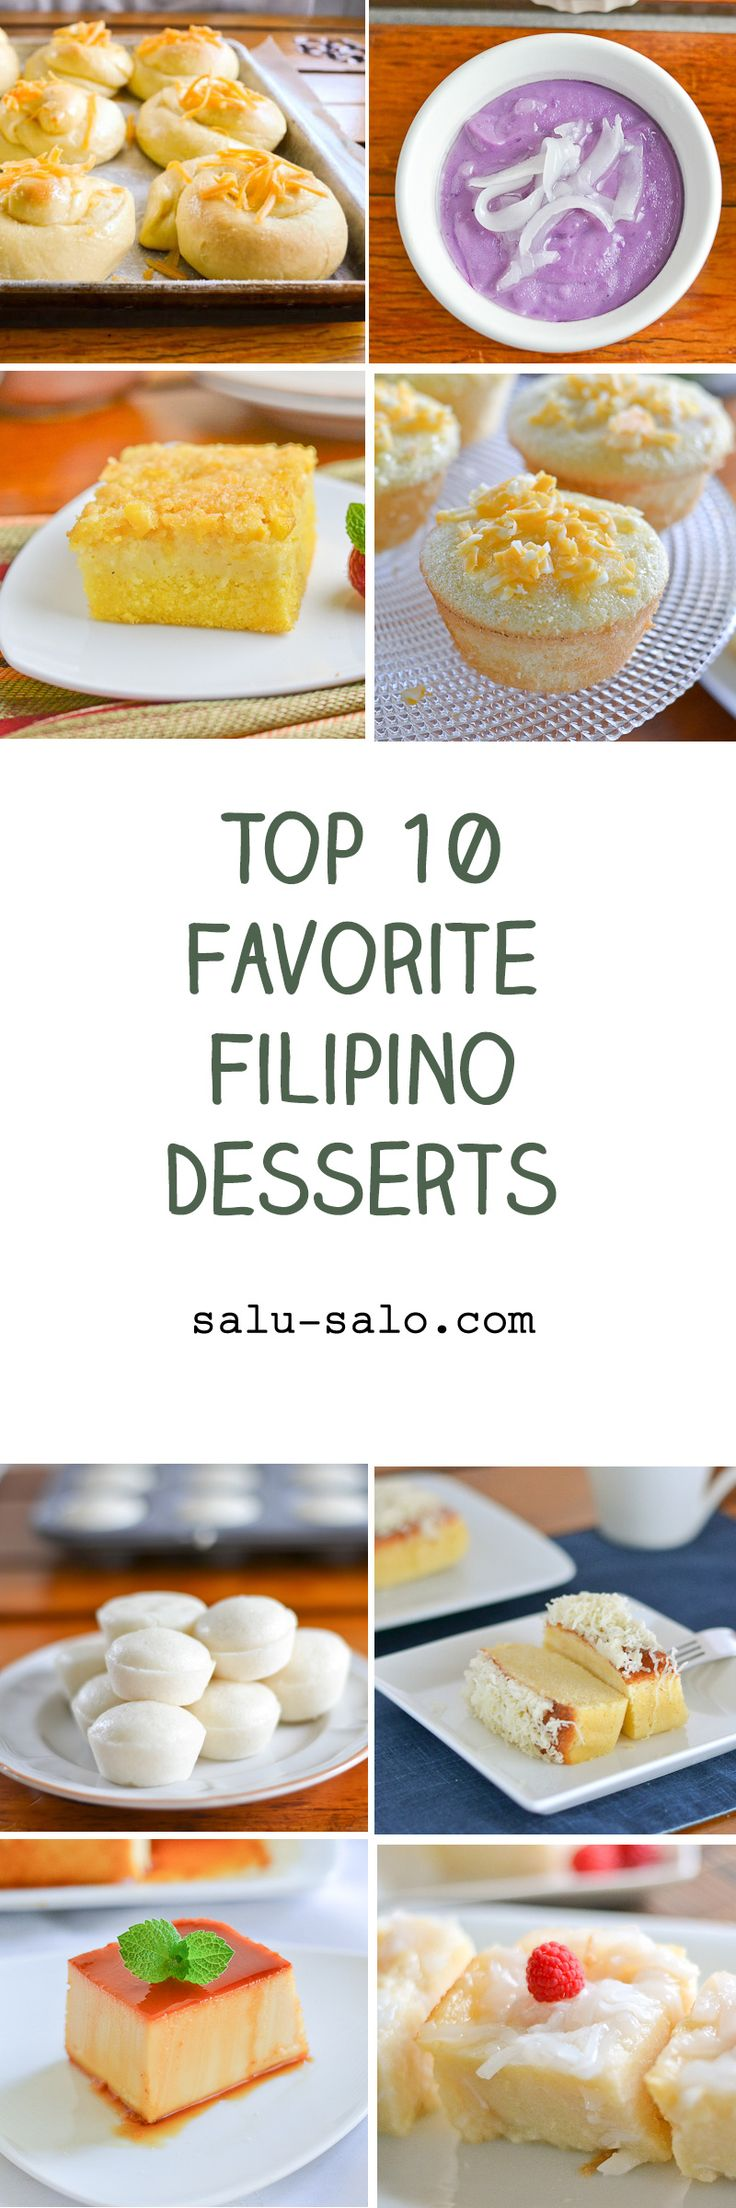 I have shared quite a few recipes over the past few years and some of my favorites have been the Filipino desserts. Devouring thesesweet treats reminds me of being back home in the Philippines. I thought that I would recap and share some of the favorites from the past few years. Puto Puto is a...Read More »